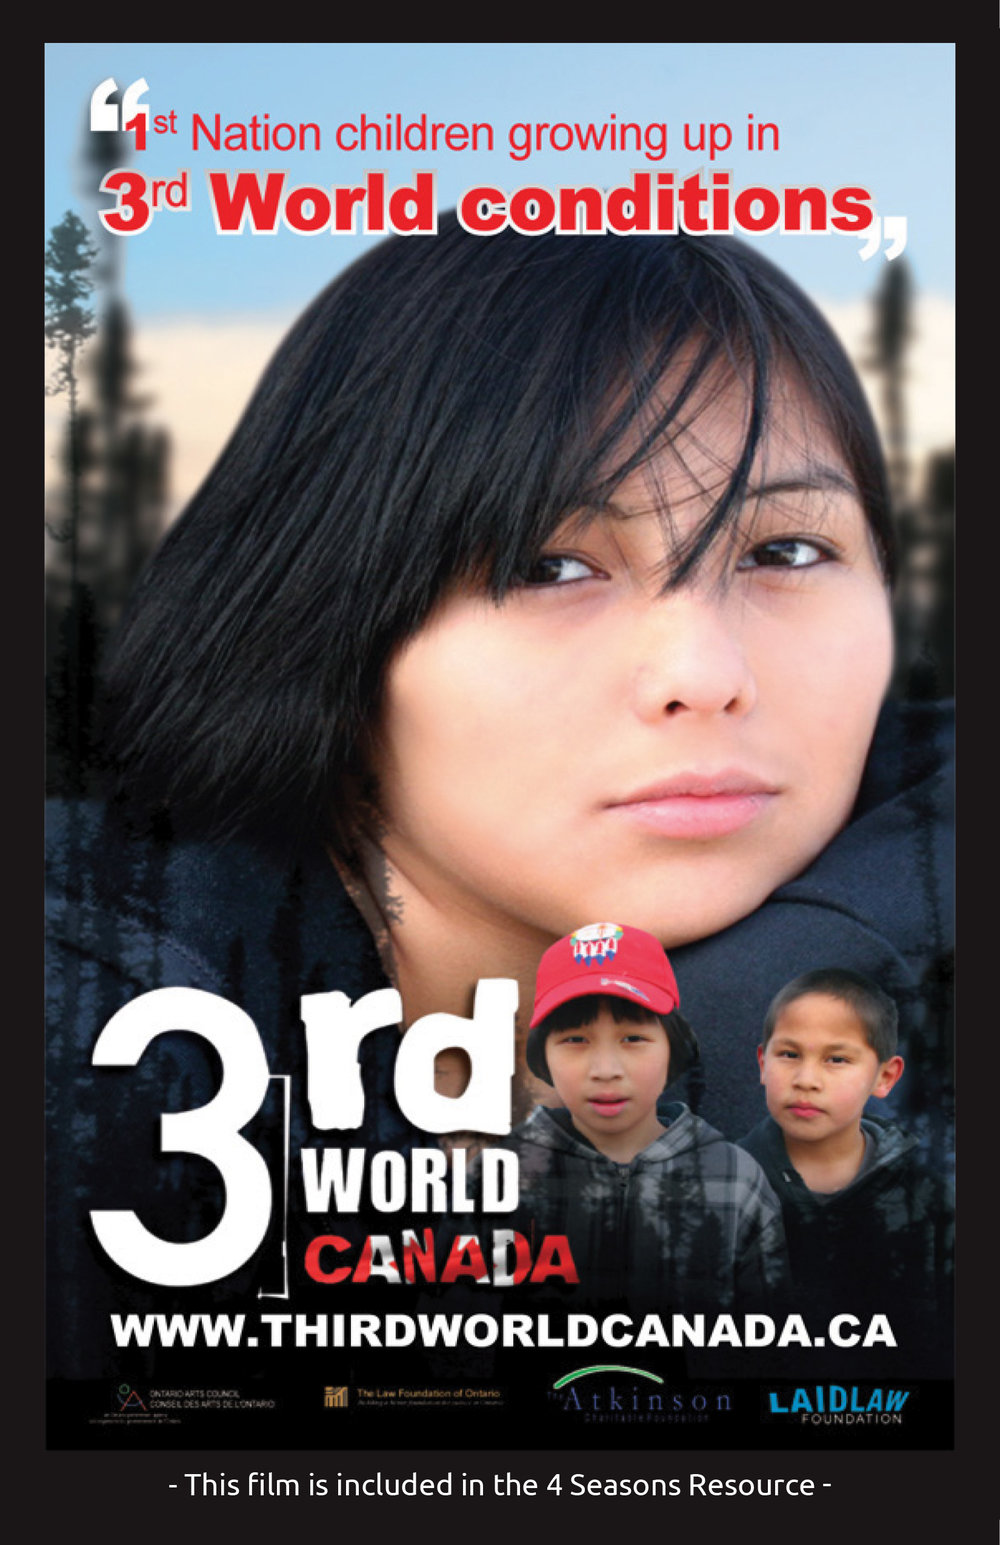 3rd_world_canada_brochure